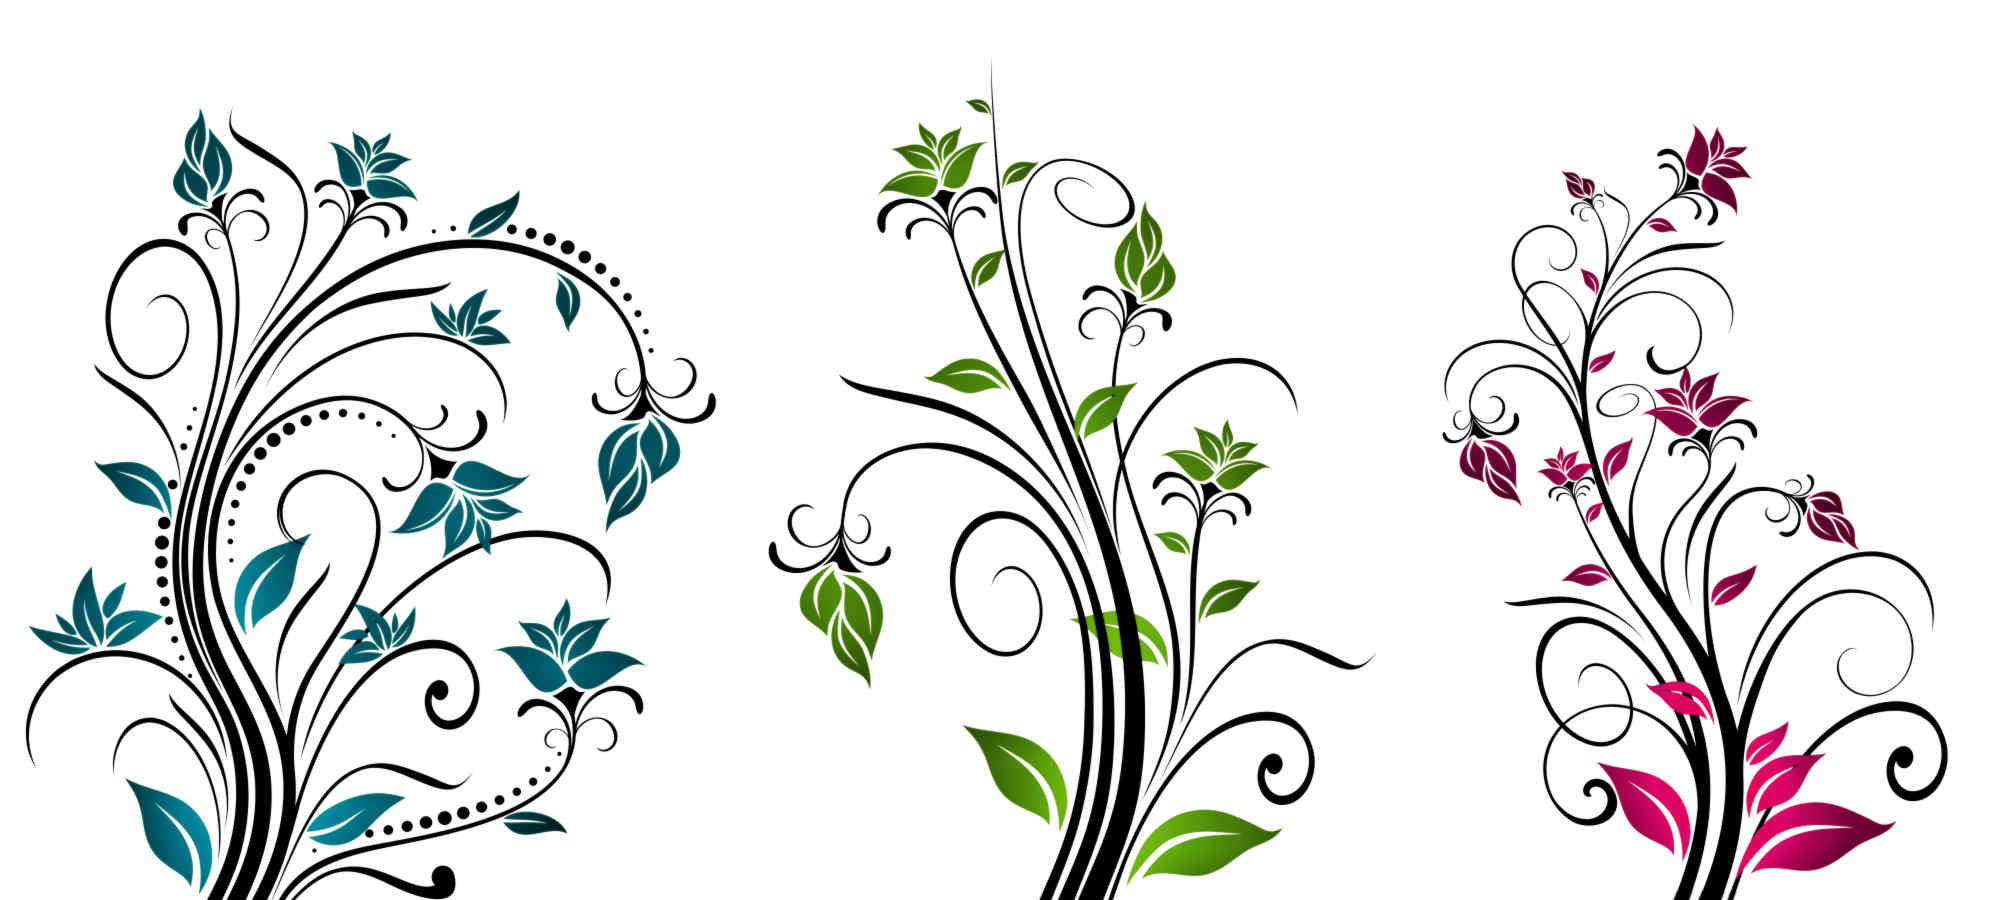 Flower 68   Free Images At Clker Com   Vector Clip Art Online Royalty